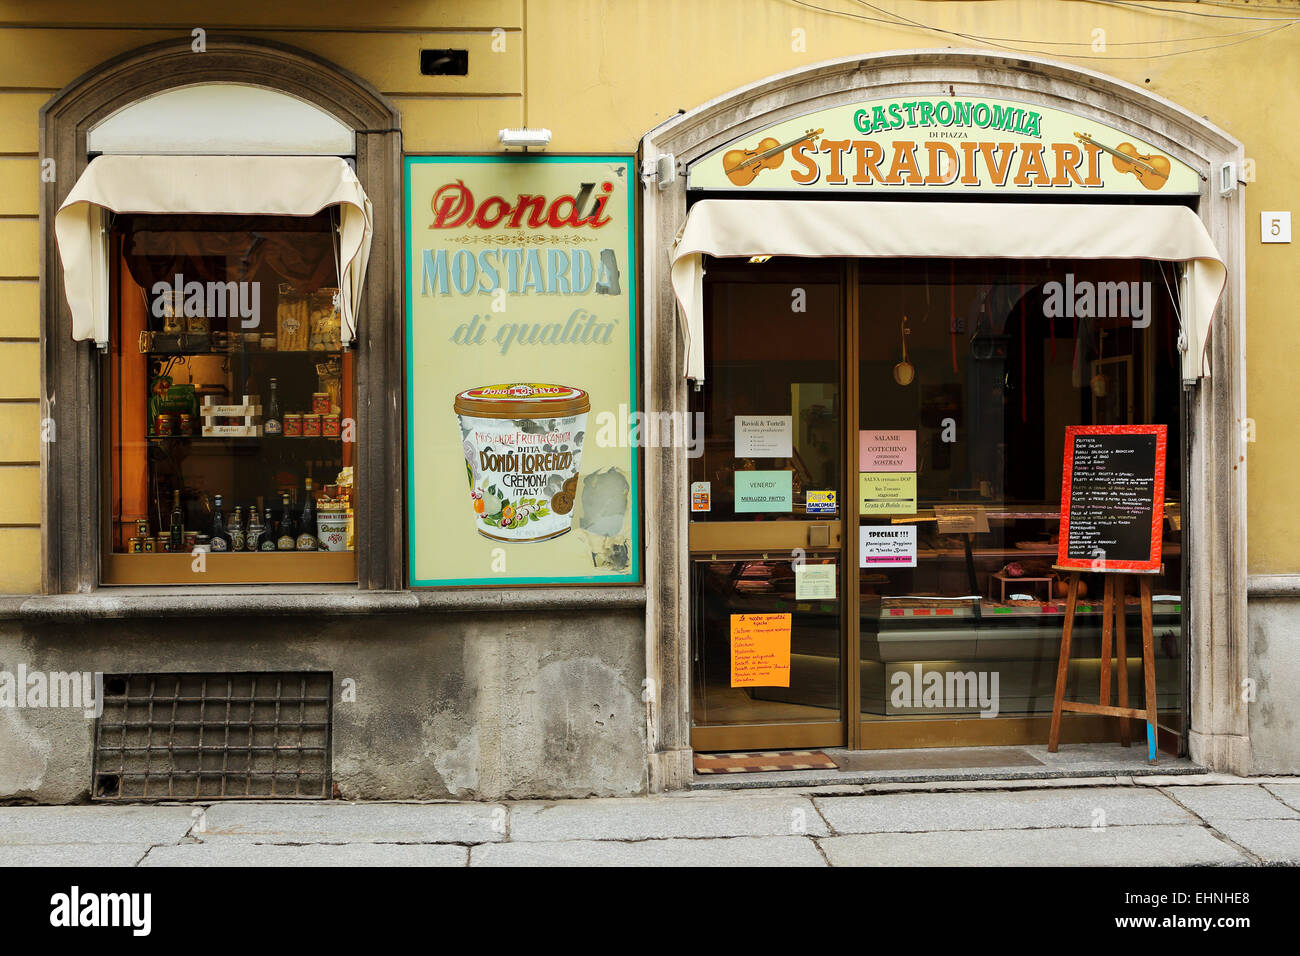 The facade of the Gastronomia Stradivari store in Cremona, Italy. The shop sells locally produced food and drink. - Stock Image